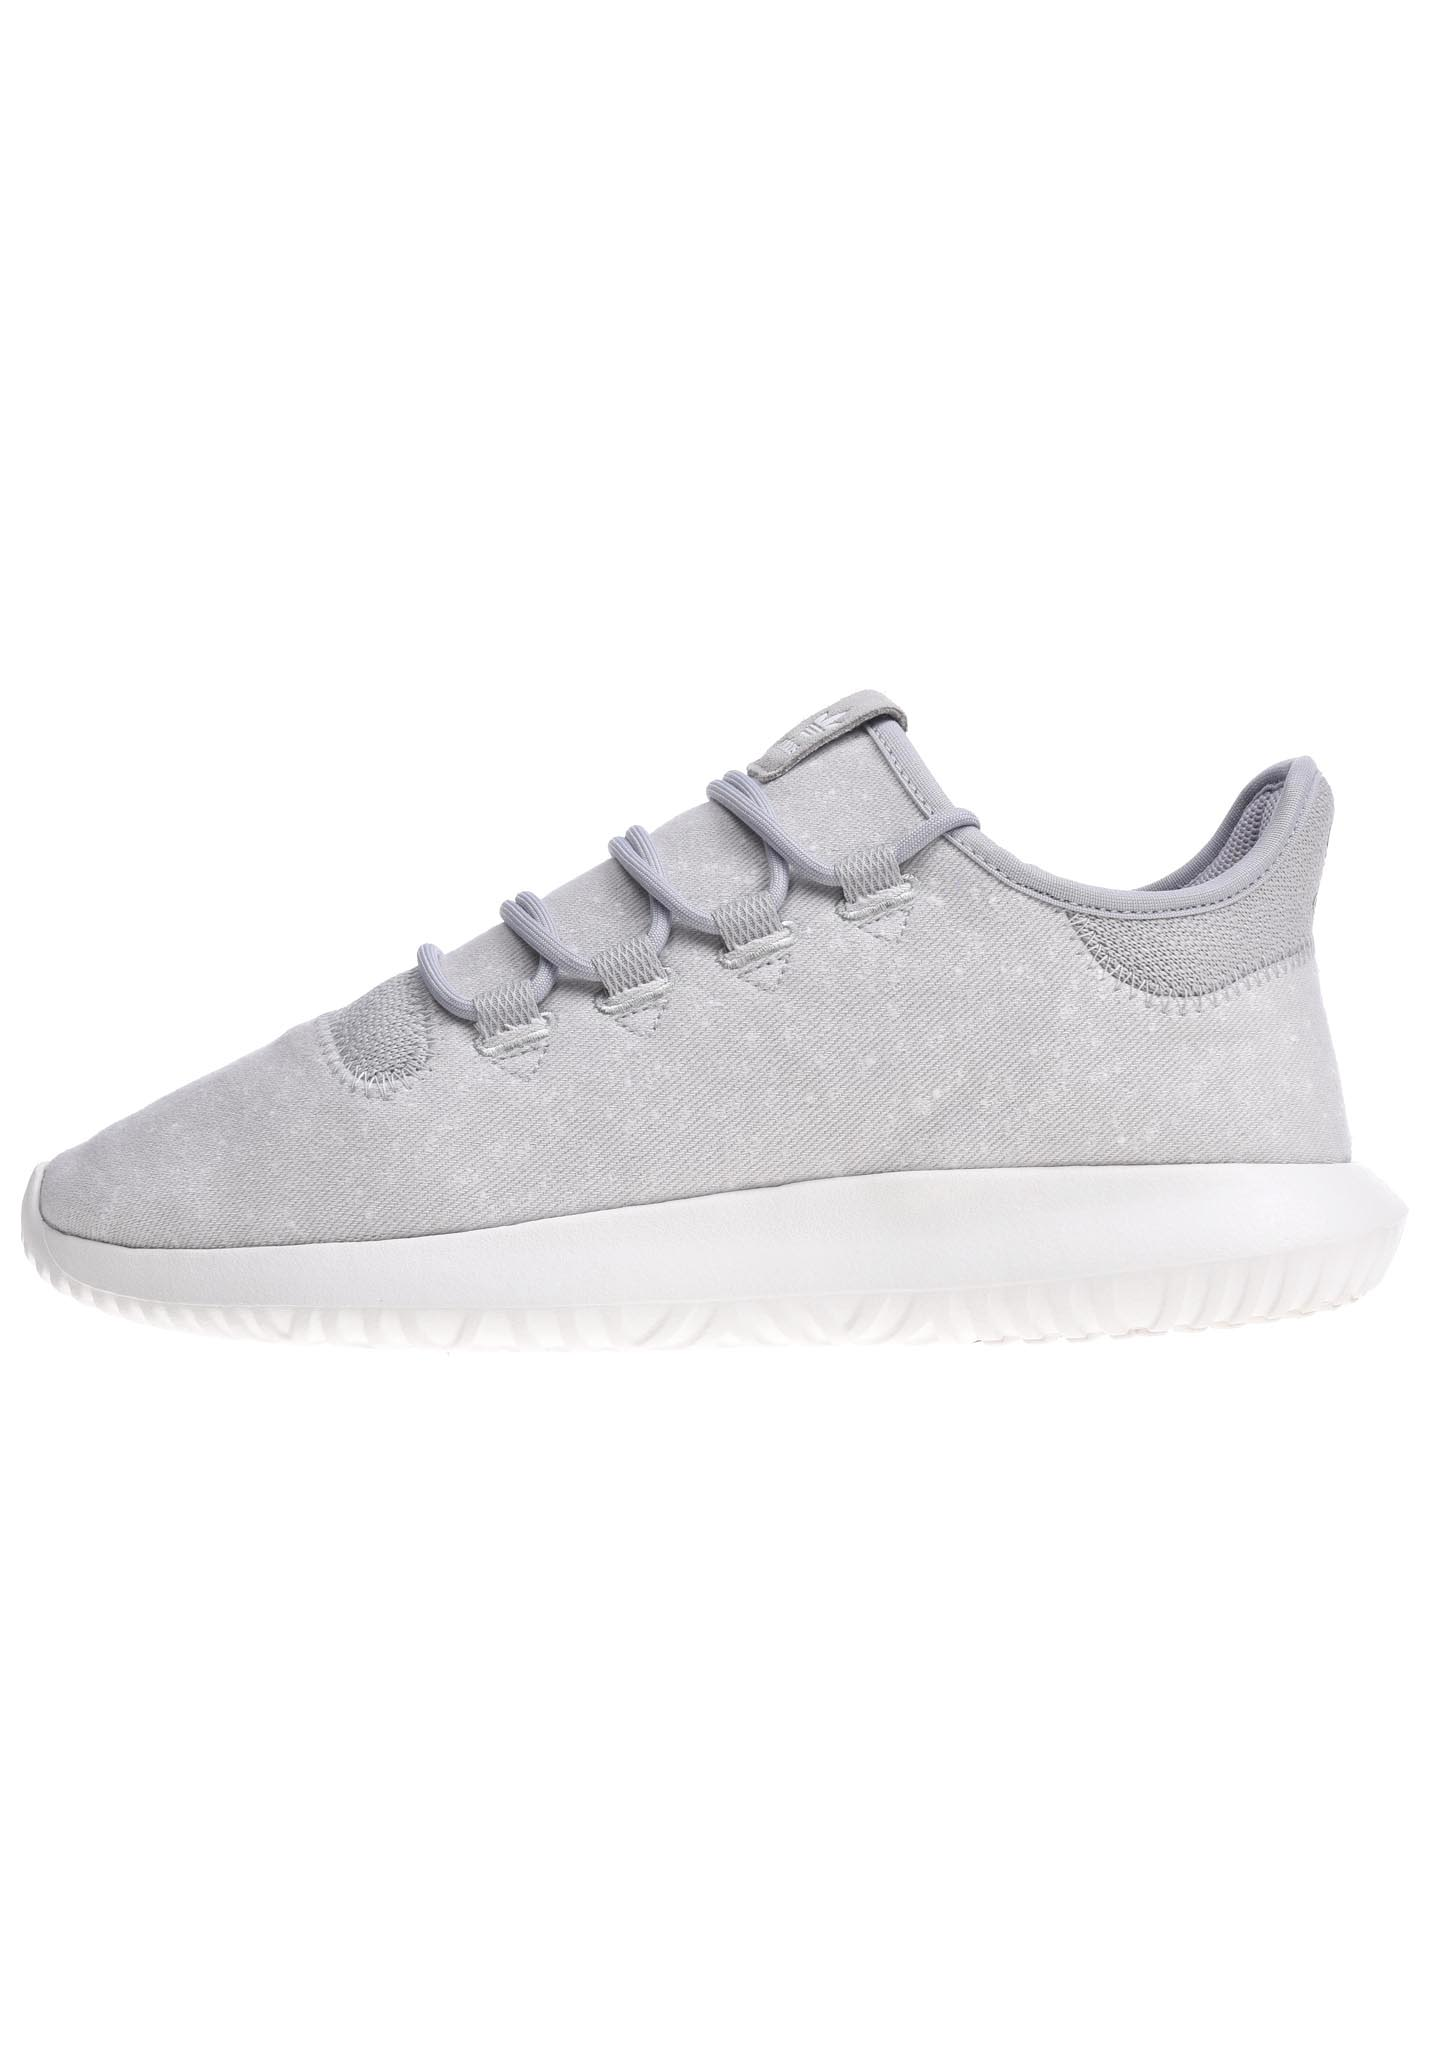 2aaf9bca947 ADIDAS ORIGINALS Tubular Shadow - Zapatillas para Hombres - Gris - Planet  Sports